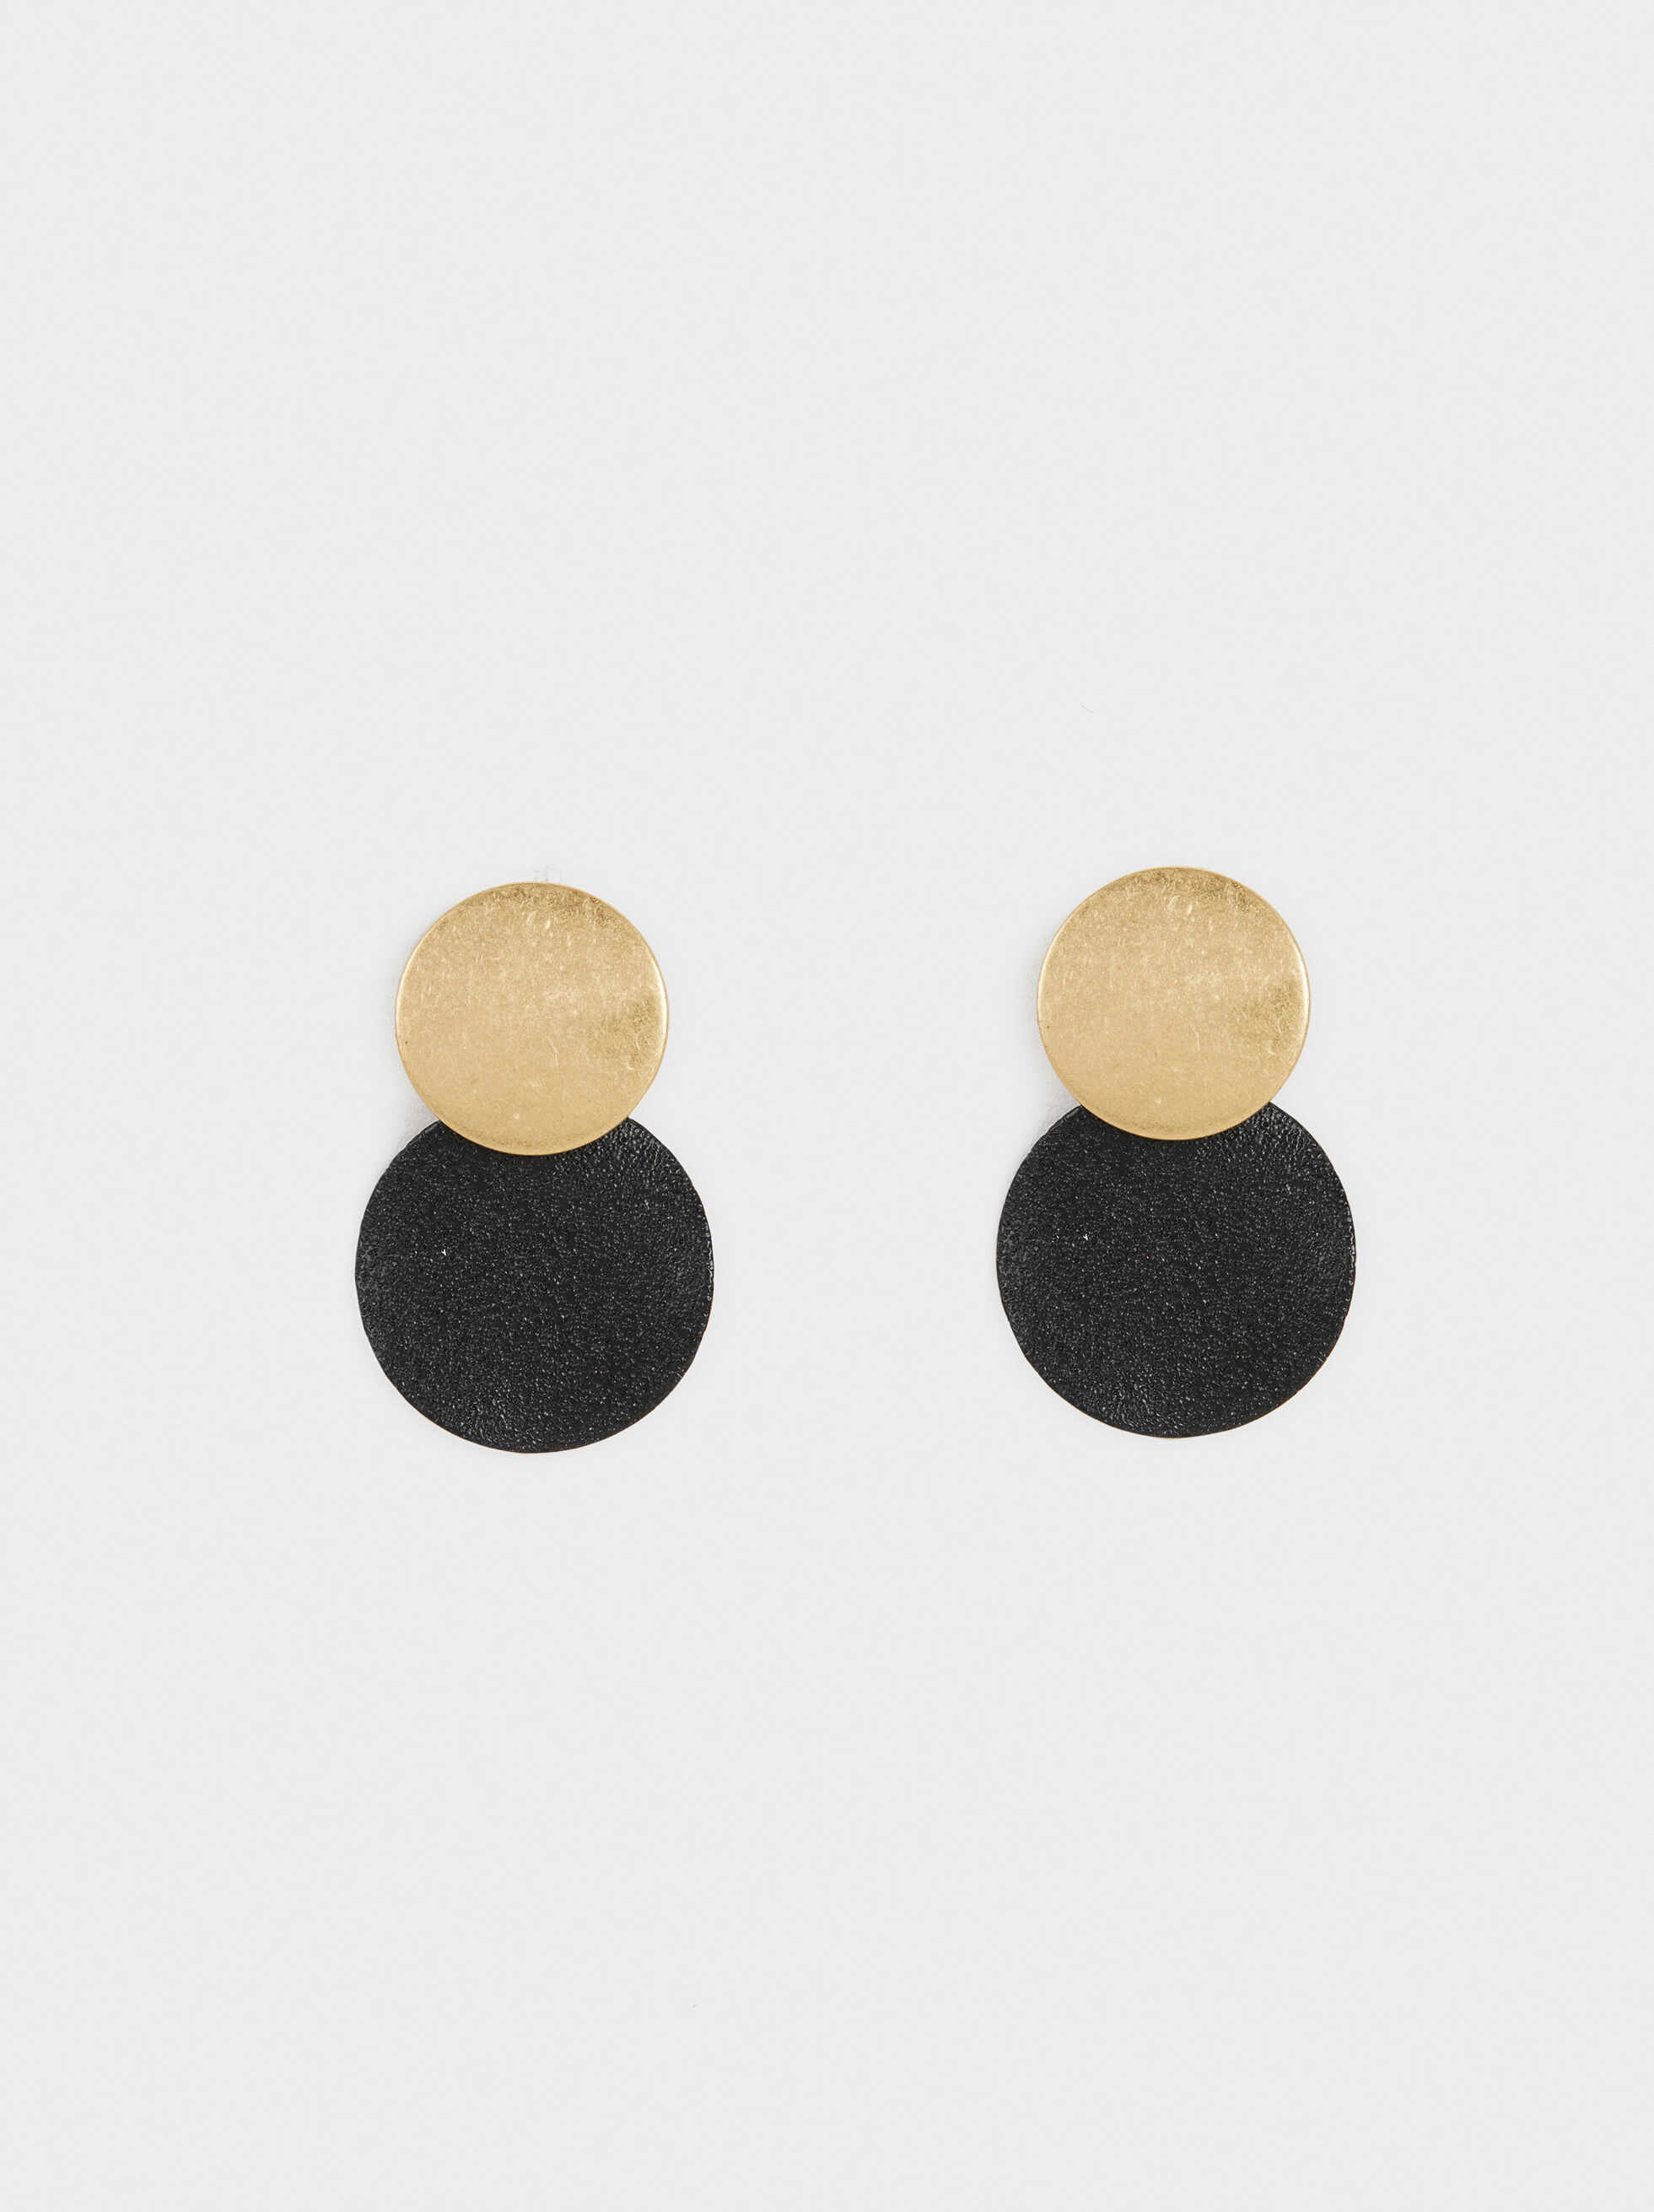 Blog Short Earrings, Multicolor, hi-res